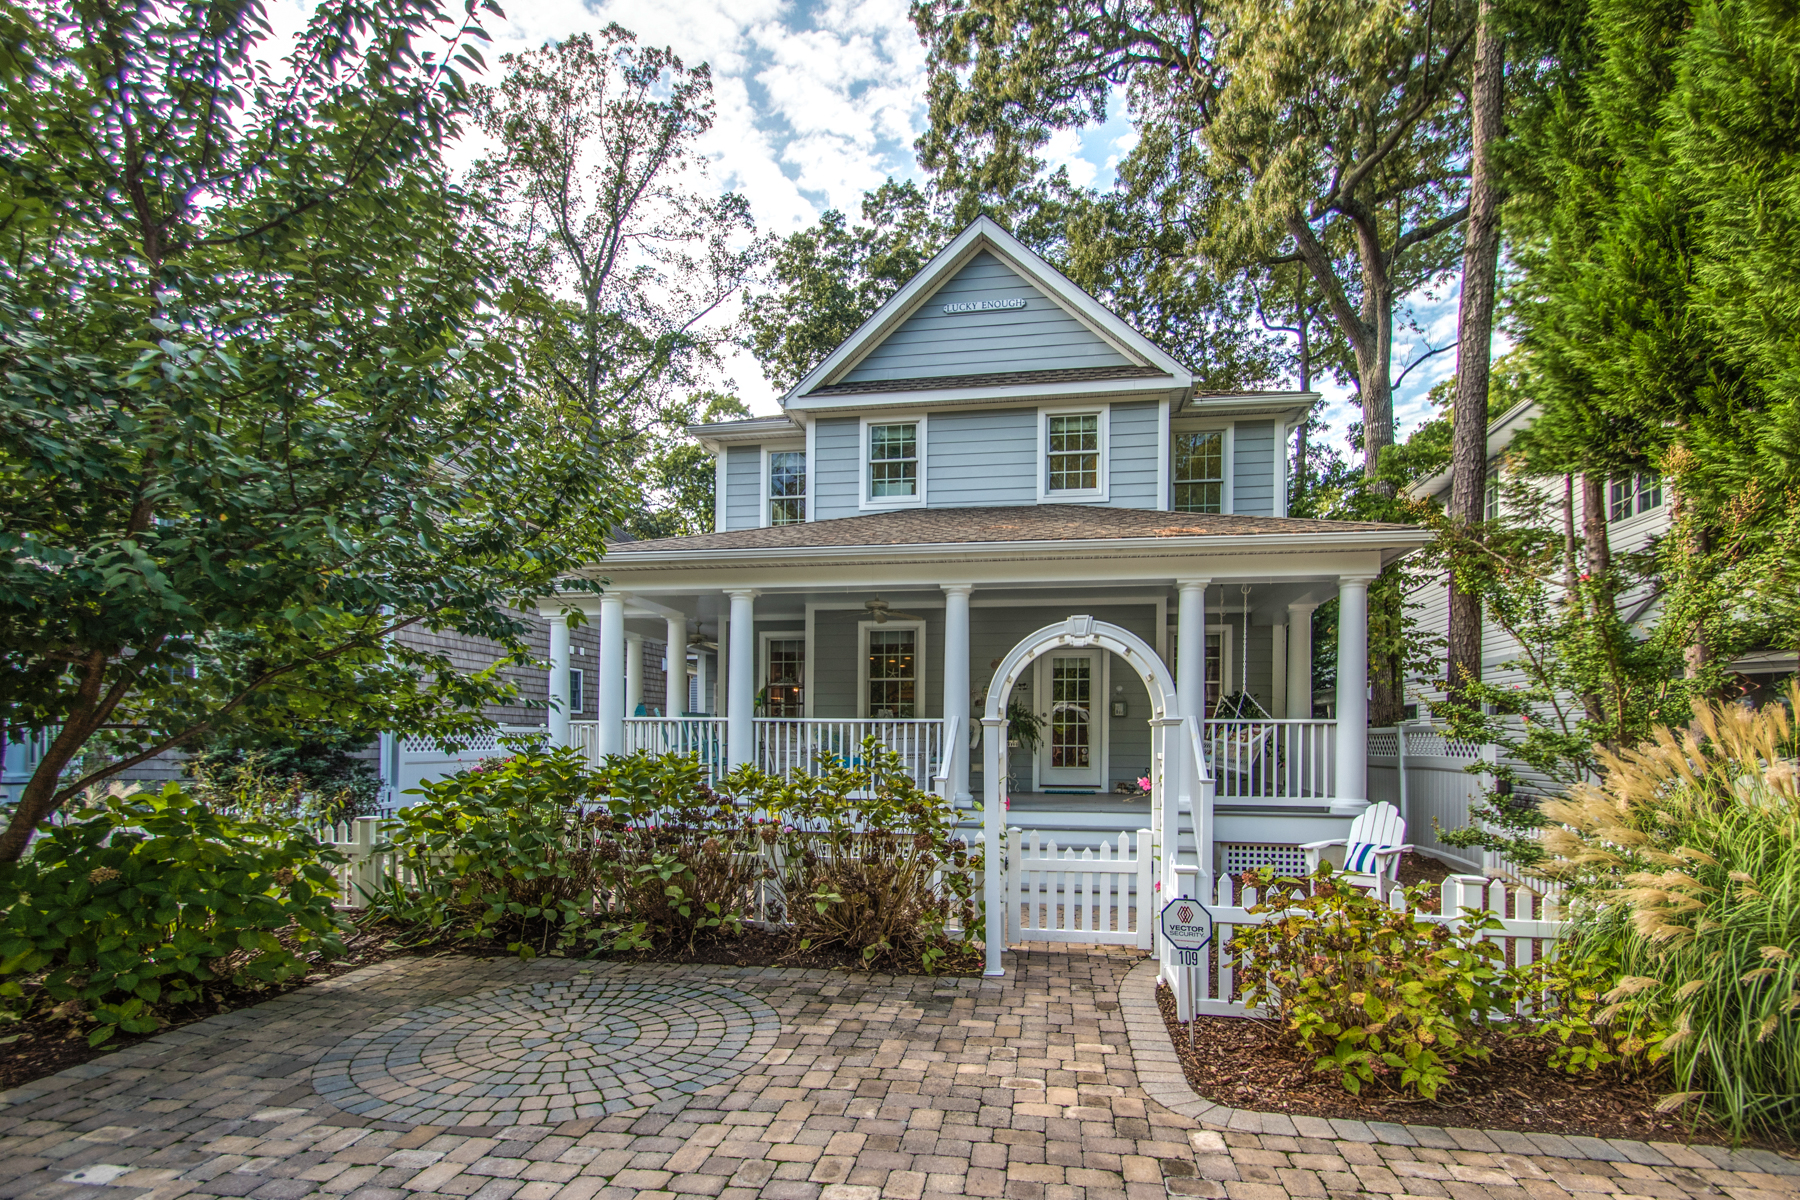 Single Family Home for Sale at 109 Columbia Ave , Rehoboth Beach, DE 19971 109 Columbia Ave Rehoboth Beach, Delaware 19971 United States